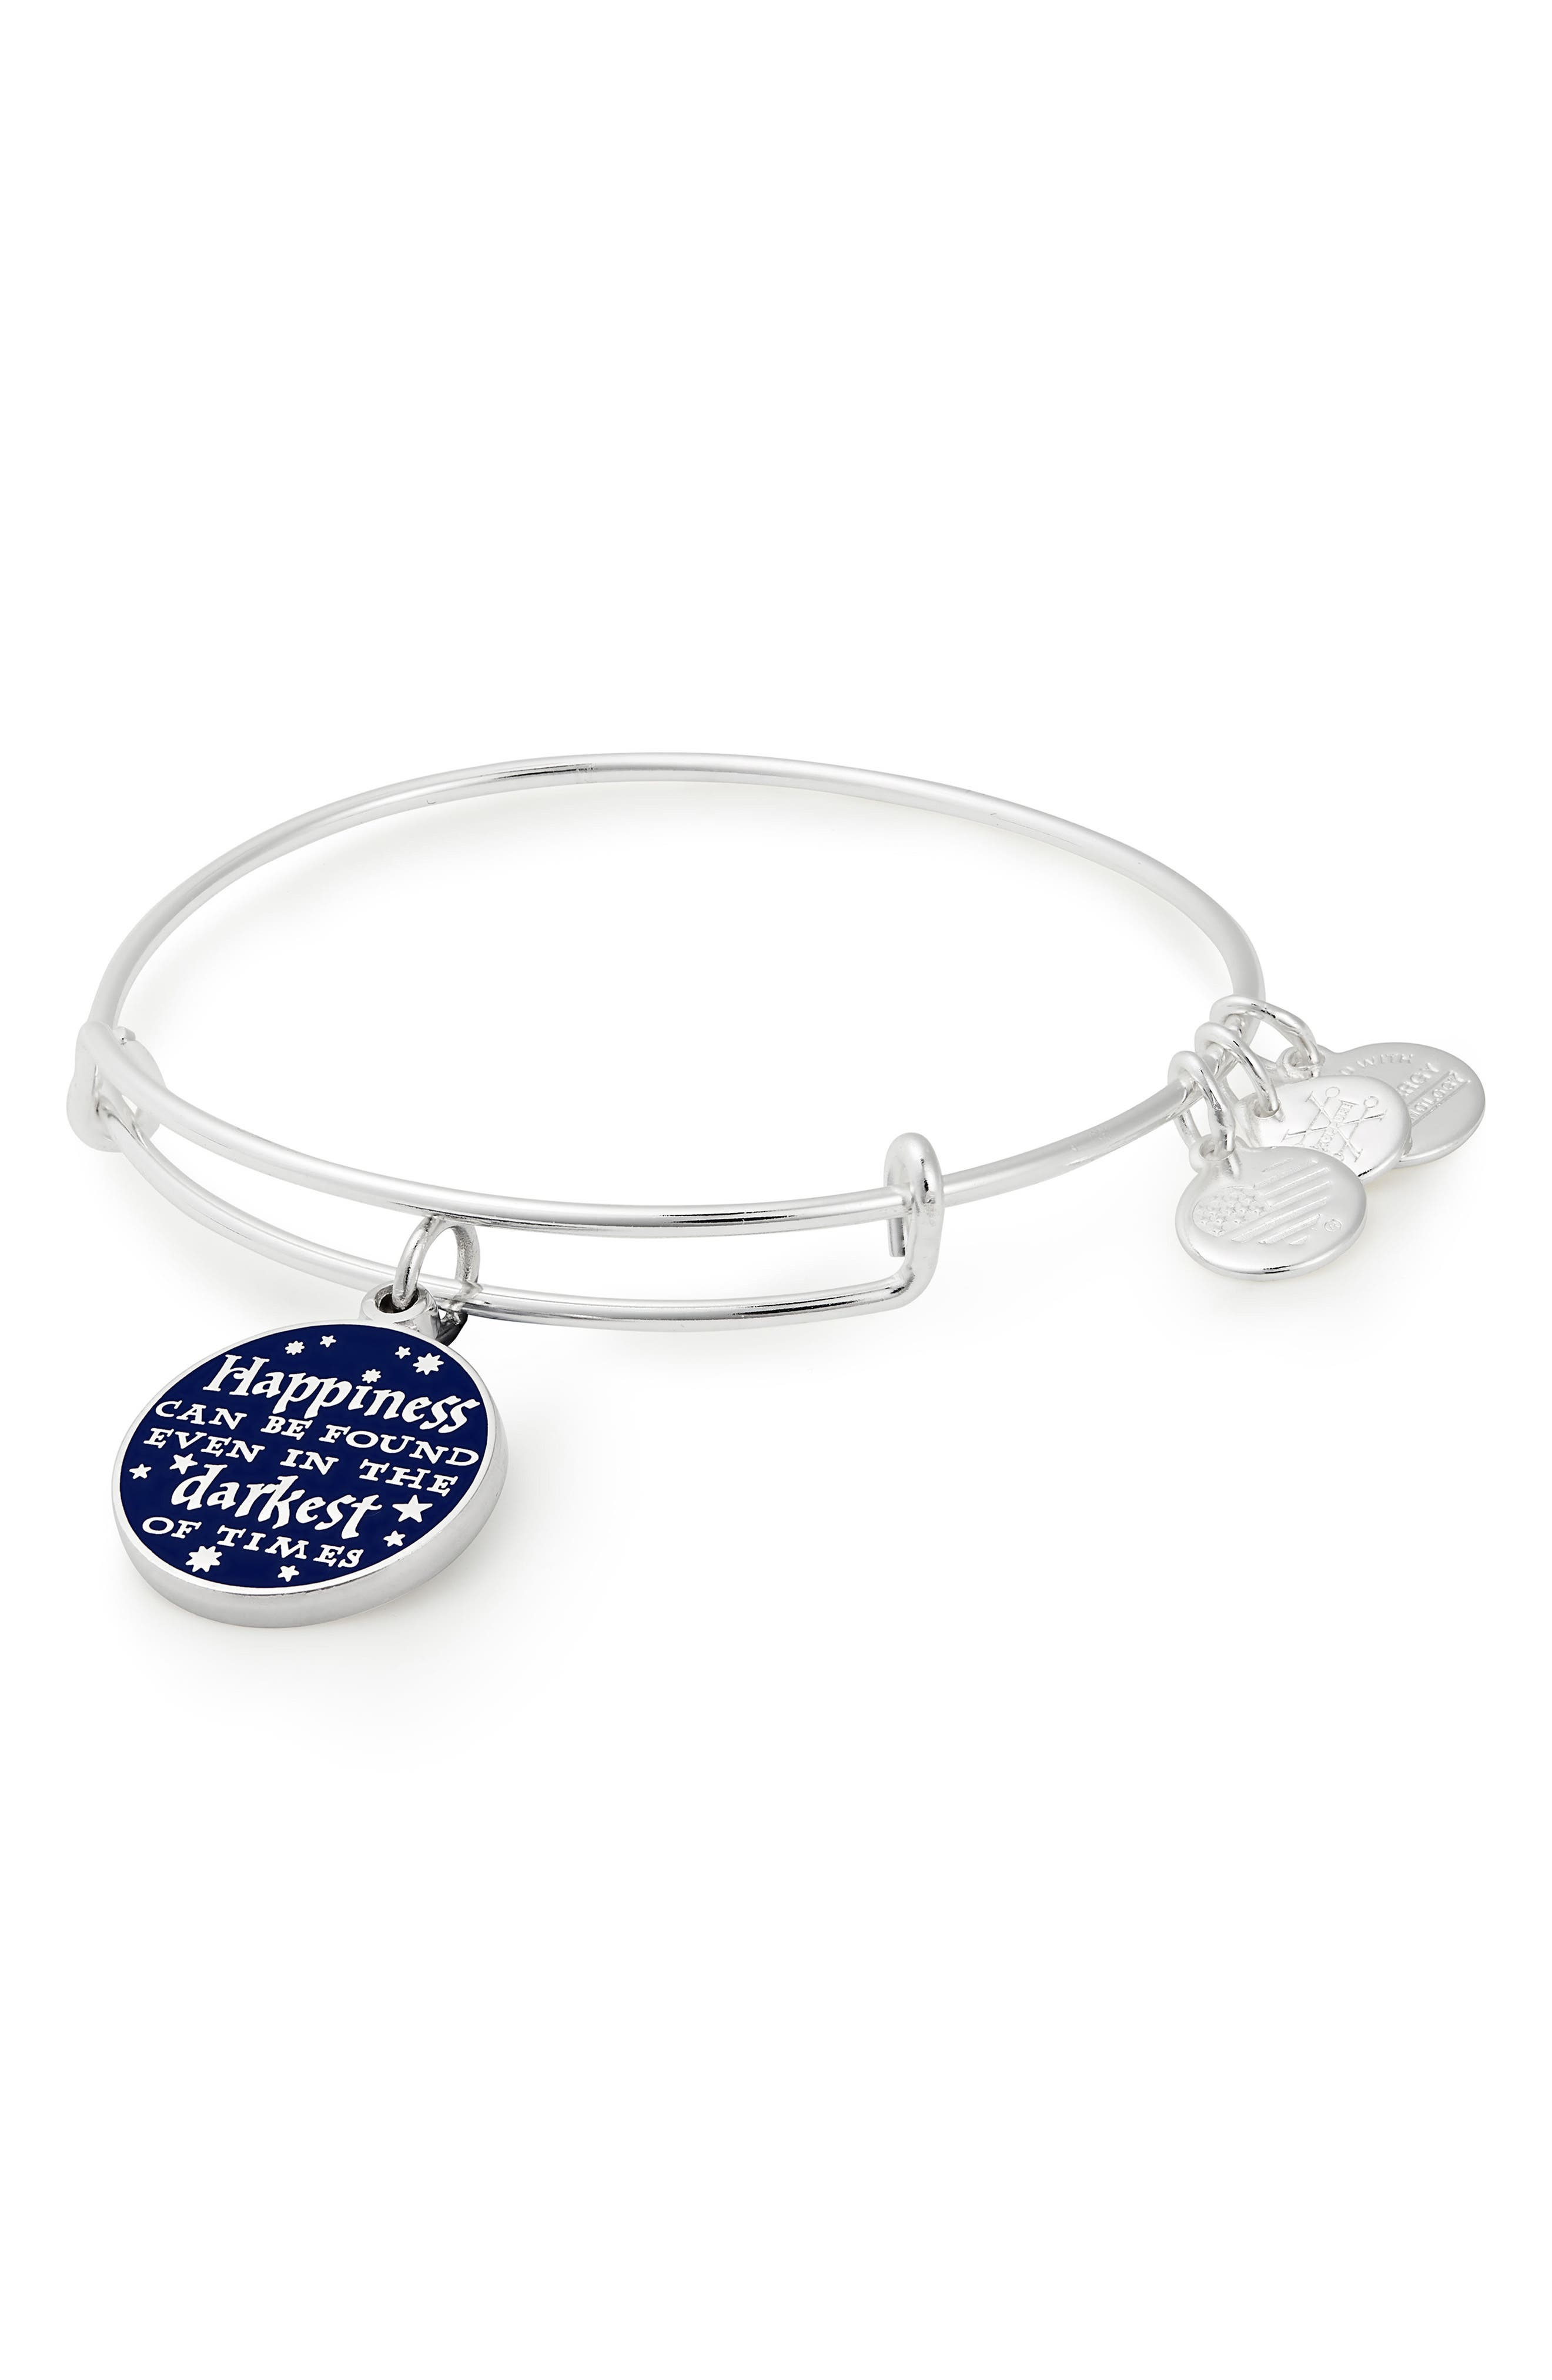 HARRY POTTER(TM) HAPPINESS CAN BE FOUND ADJUSTABLE CHARM BRACELET